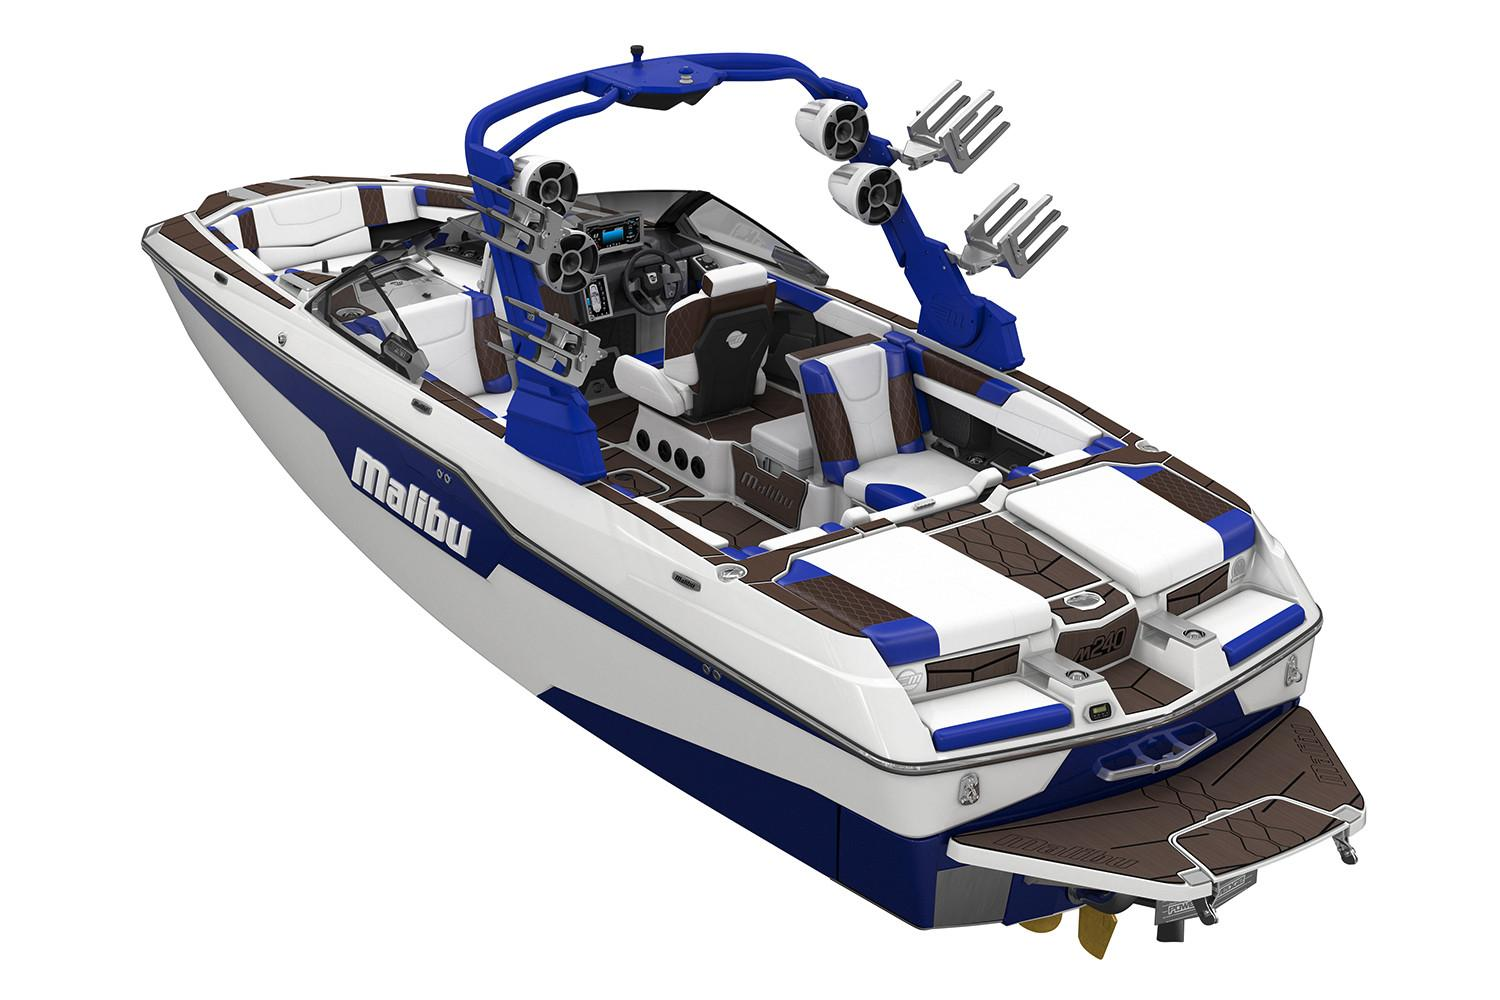 New 2020 Malibu M240 Power Boats Inboard In Rapid City Sd Stock Number